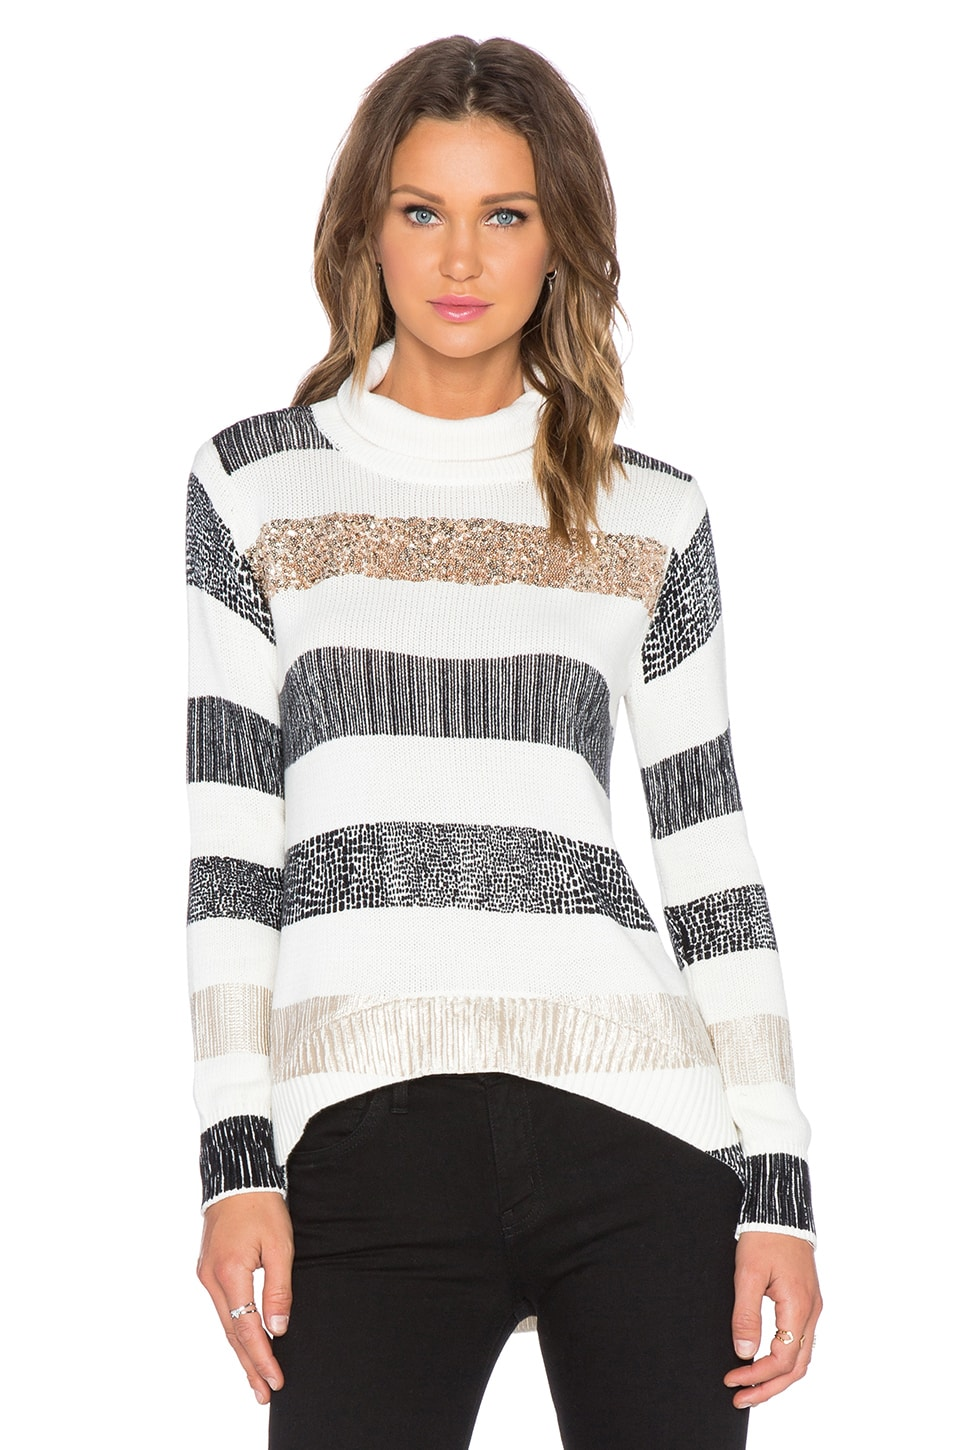 Sass & Bide August Evening Star Sweater in Ivory